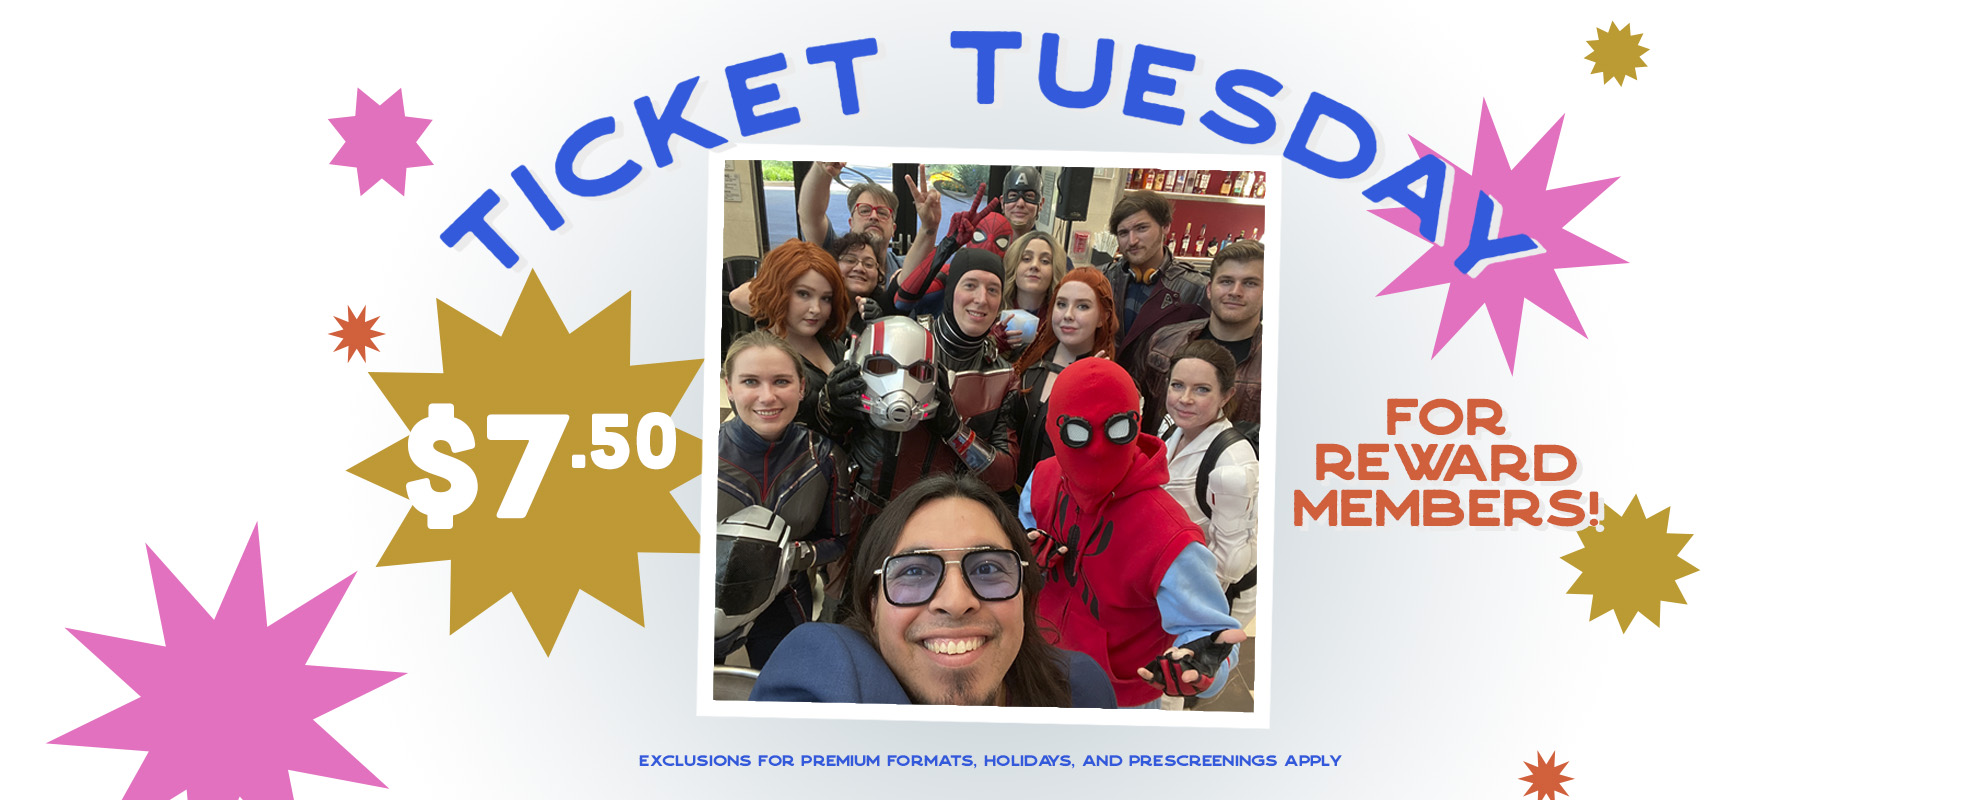 $7.50 Ticket Tuesday image